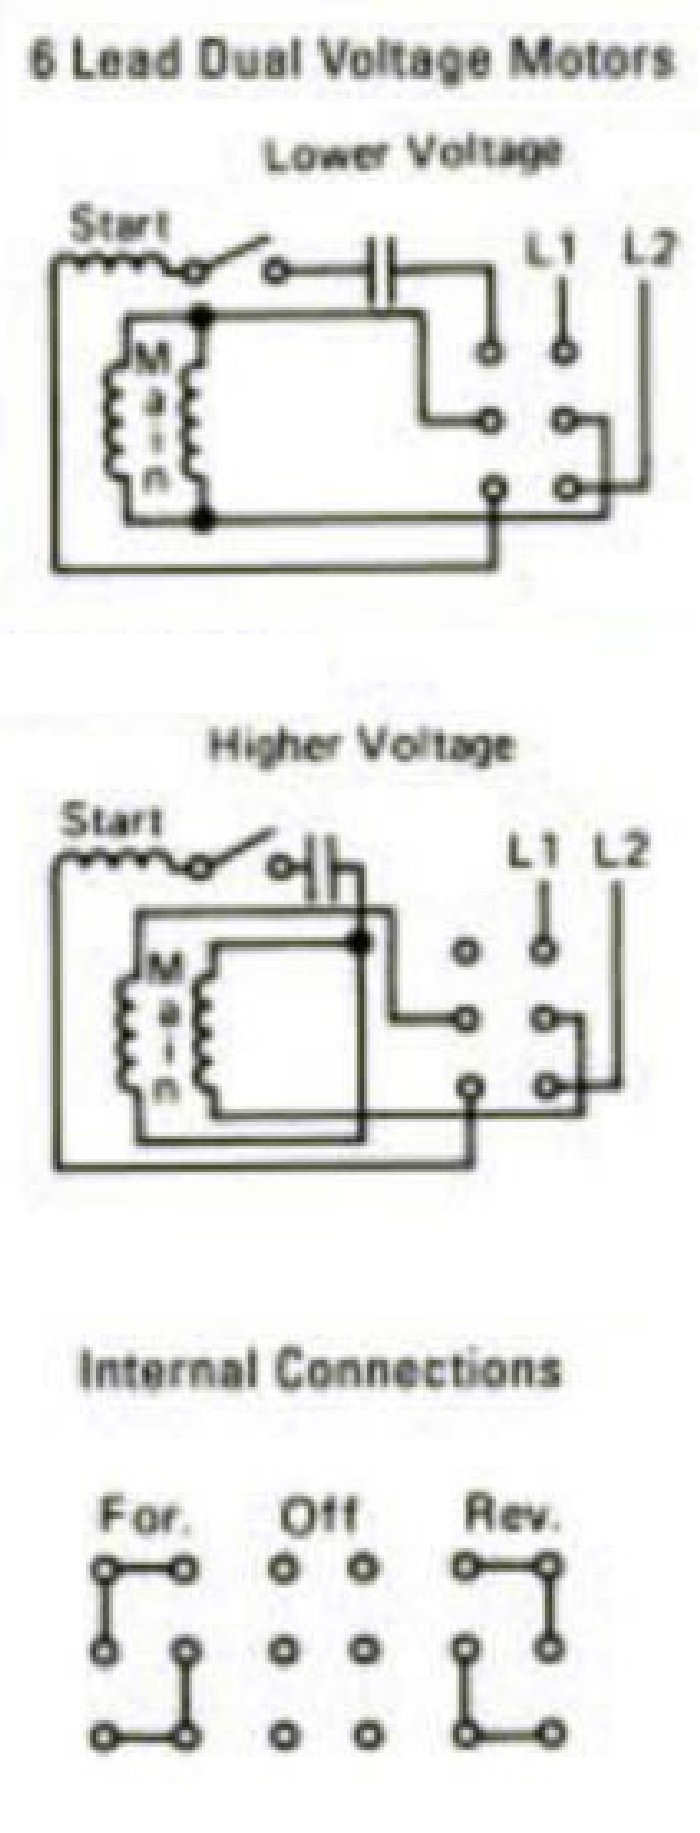 Index Of Electrical 45 Kva Transformer Wiring Diagram 6 Lead Drum Sw Wirin